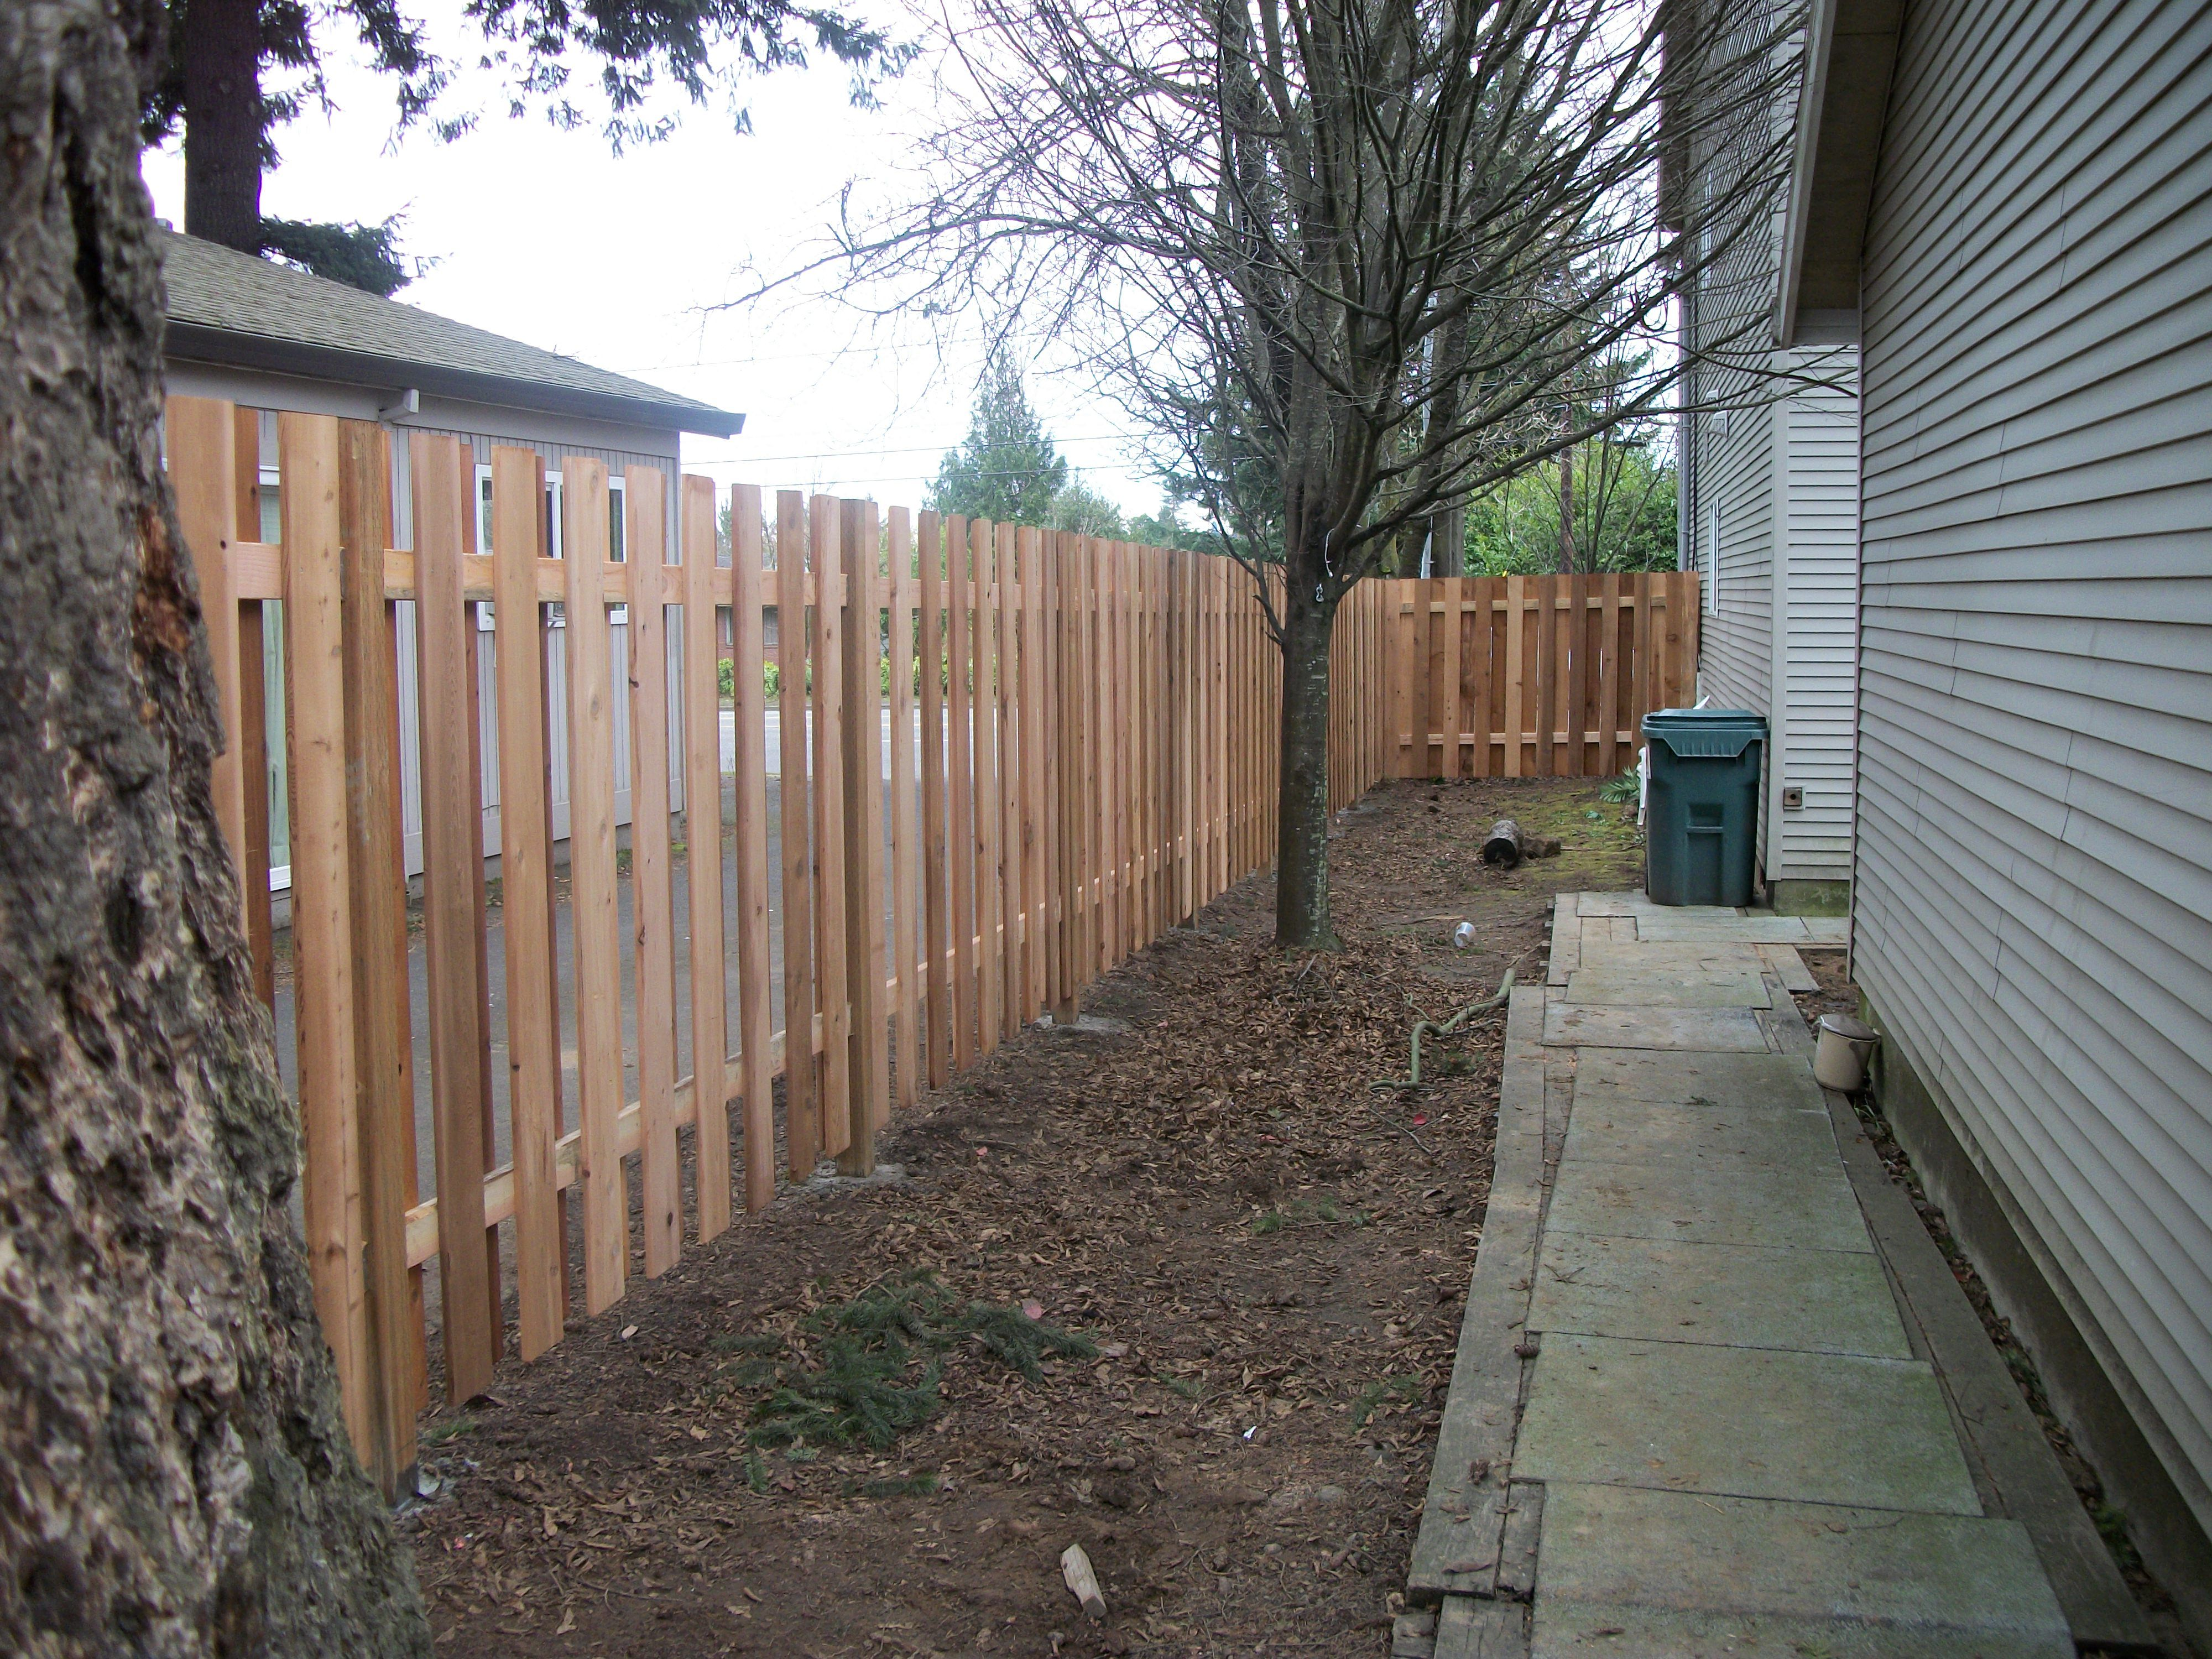 6 39 High Good Neighbor Fence Fence Gate Wall Designs